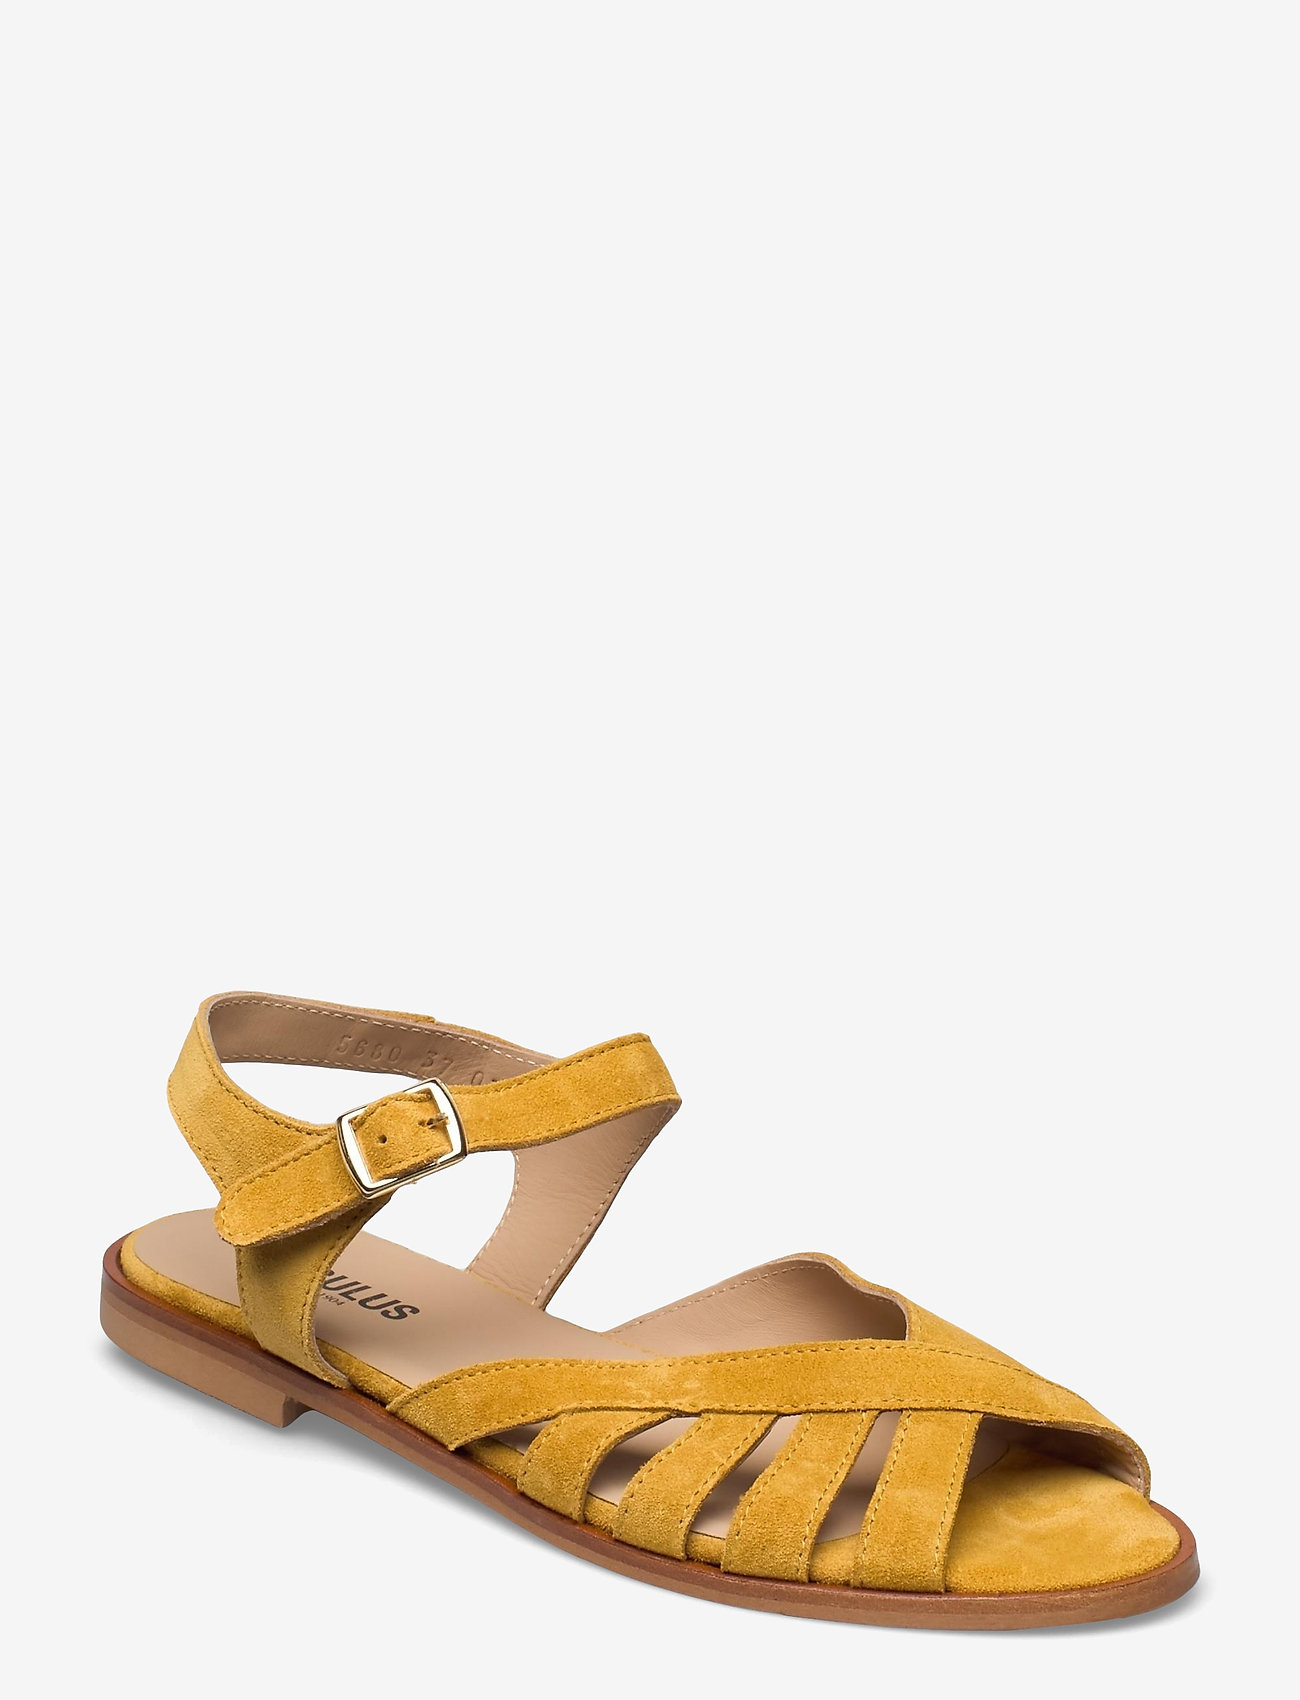 ANGULUS - Sandals - flat - open toe - op - flache sandalen - 2201 yellow - 0